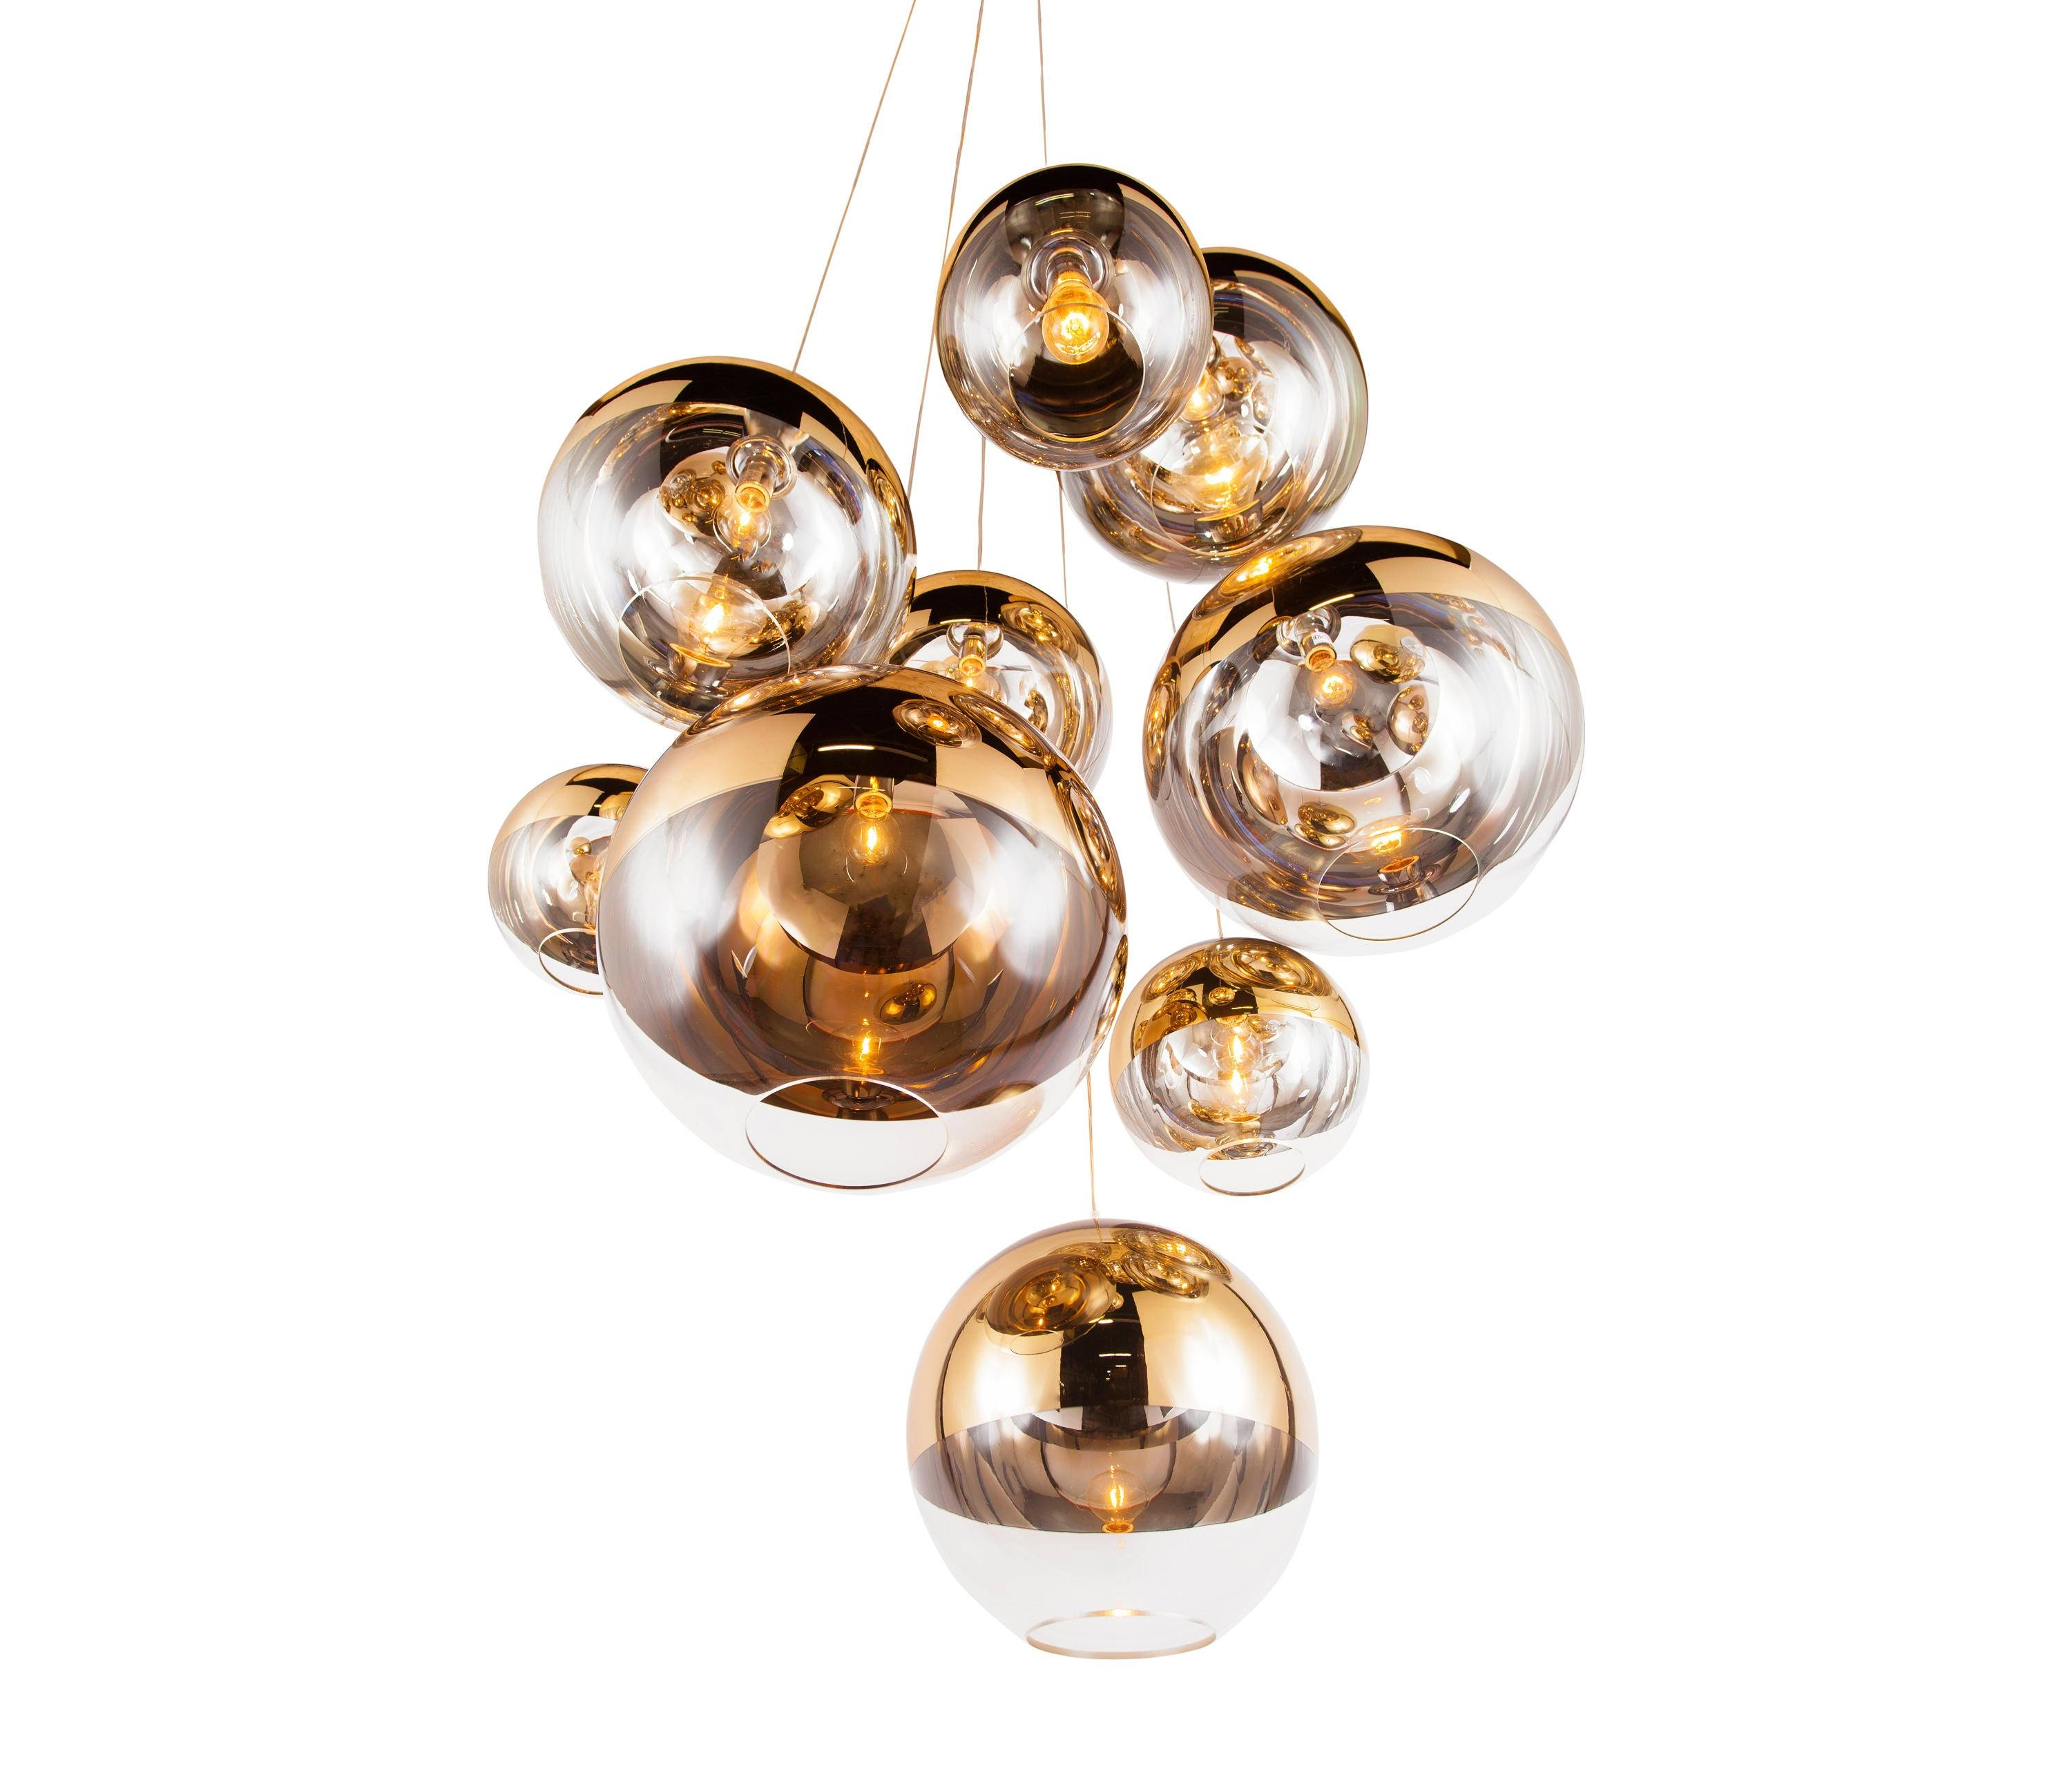 Bolio Suspension - General Lighting From Viso | Architonic in Bolio Pendant Lights (Image 9 of 15)